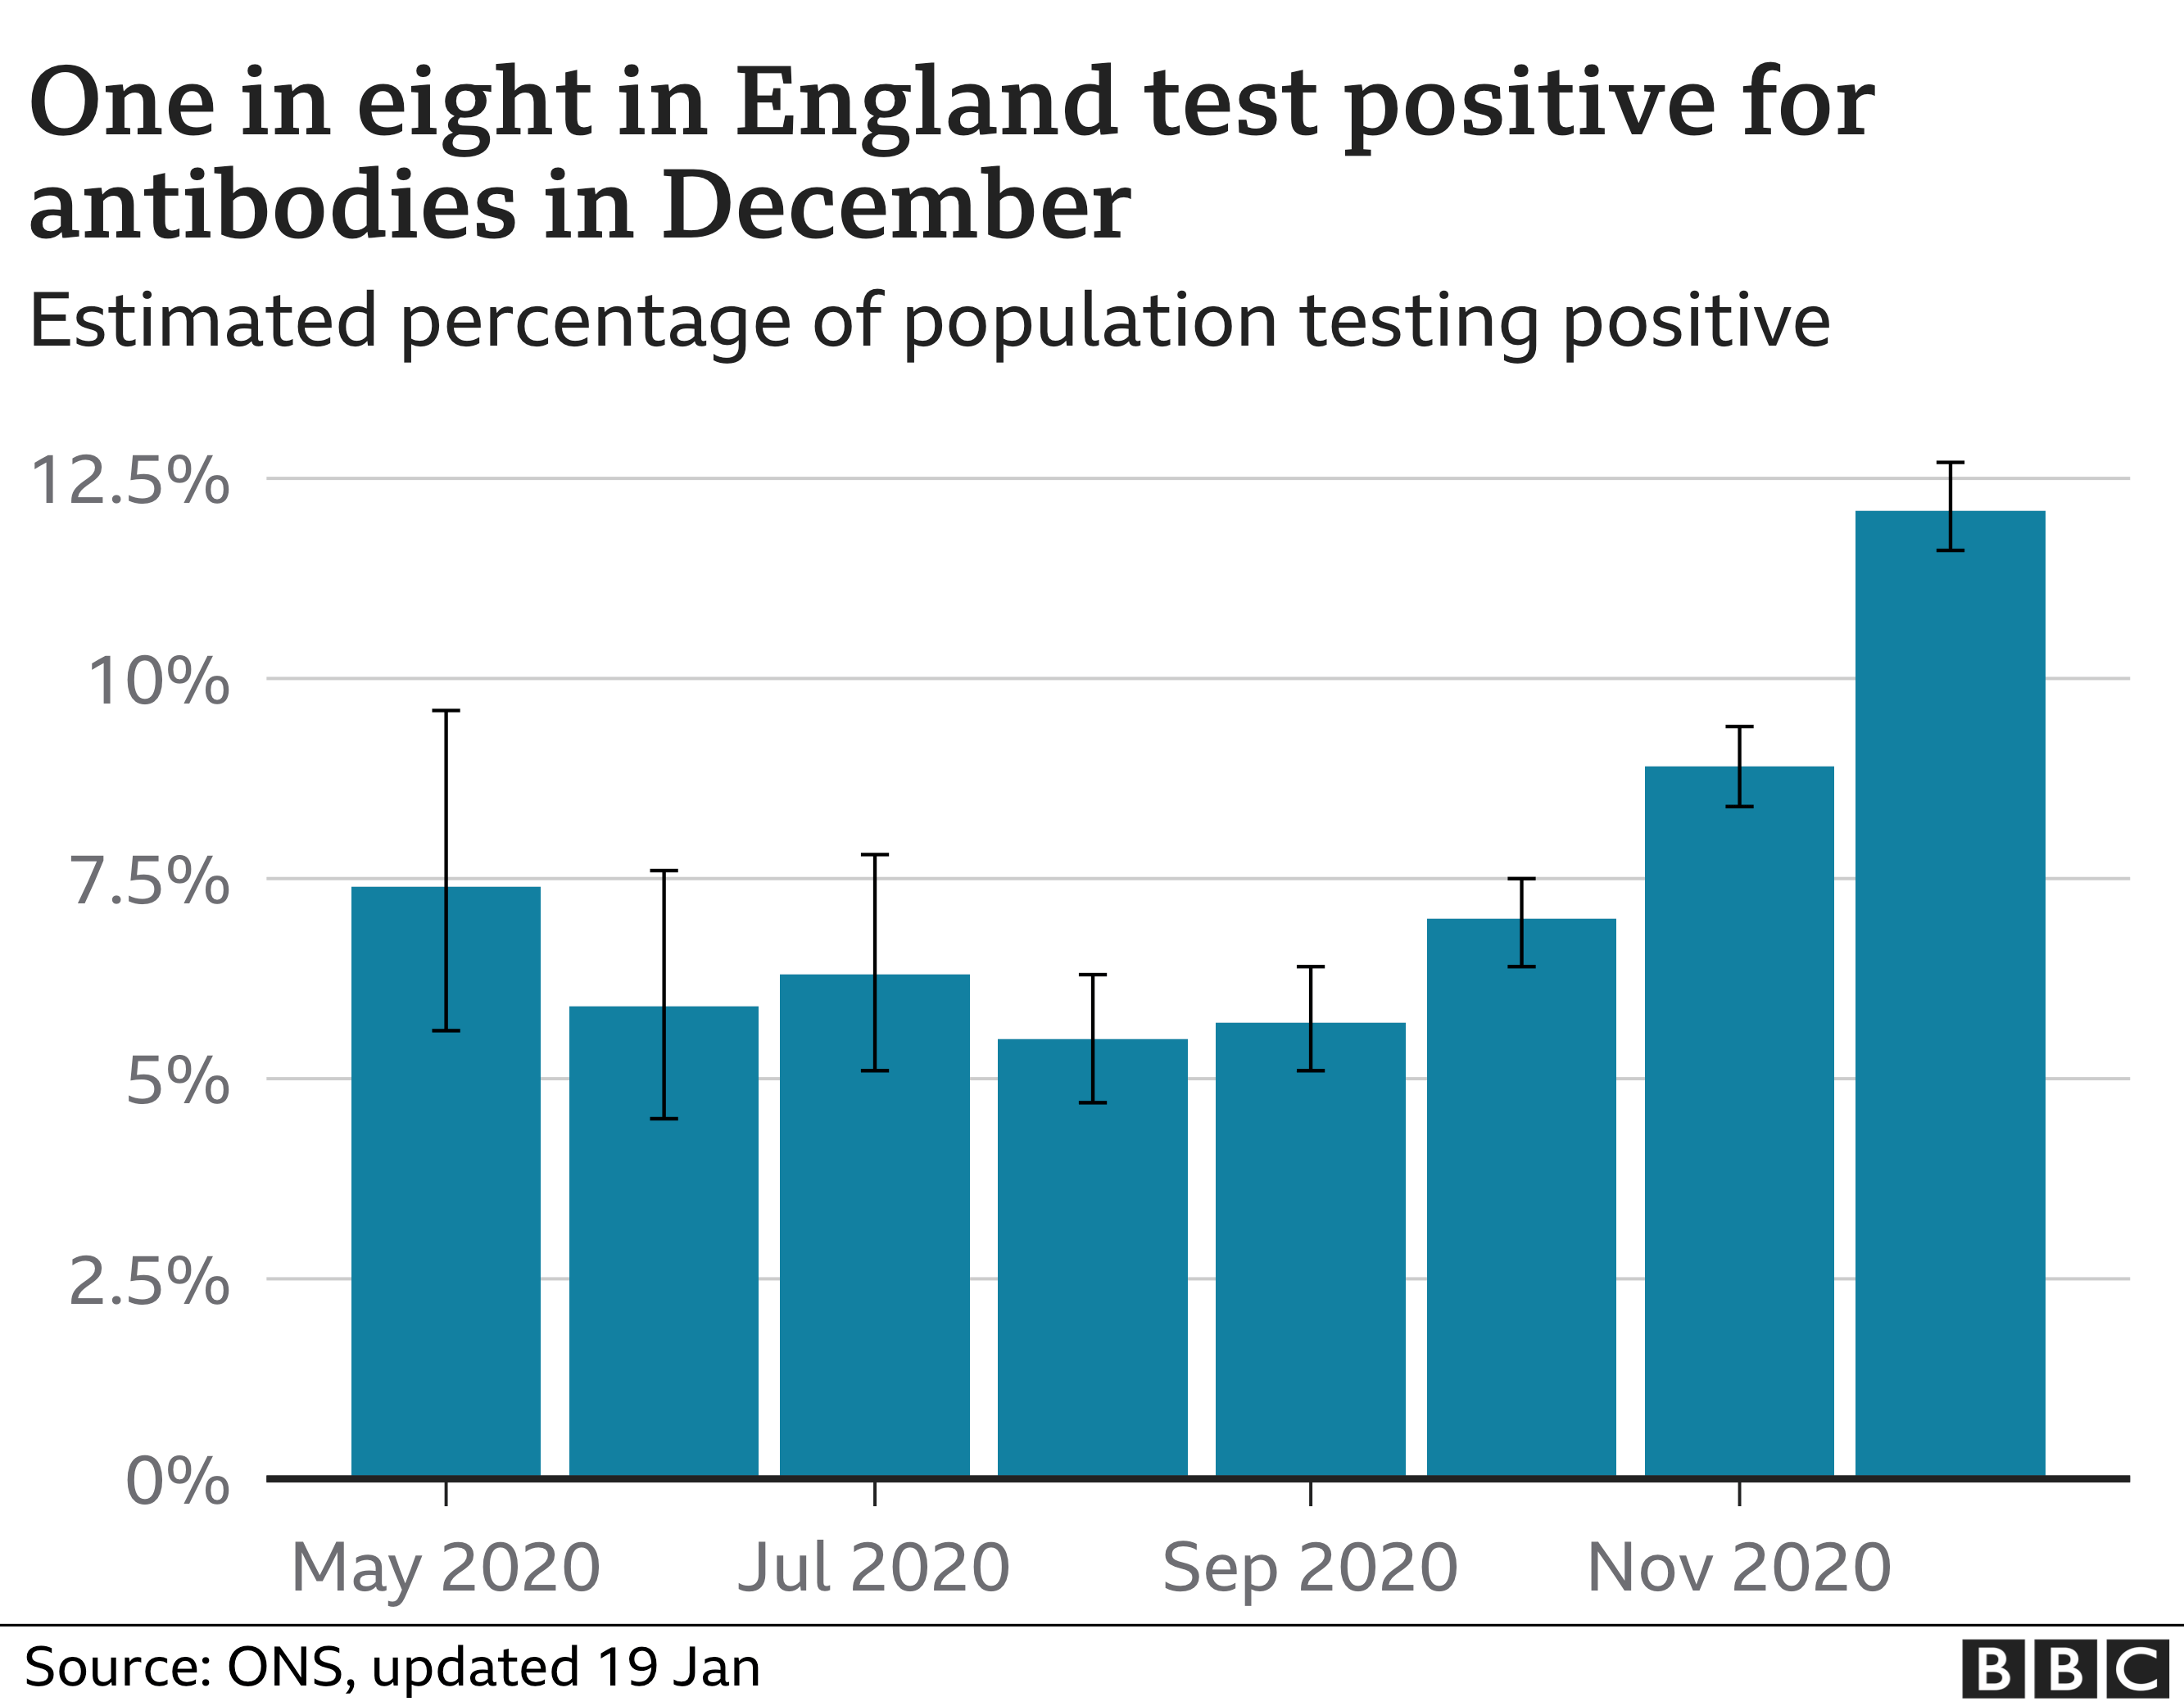 antibodies rose, fell and then rose again in england